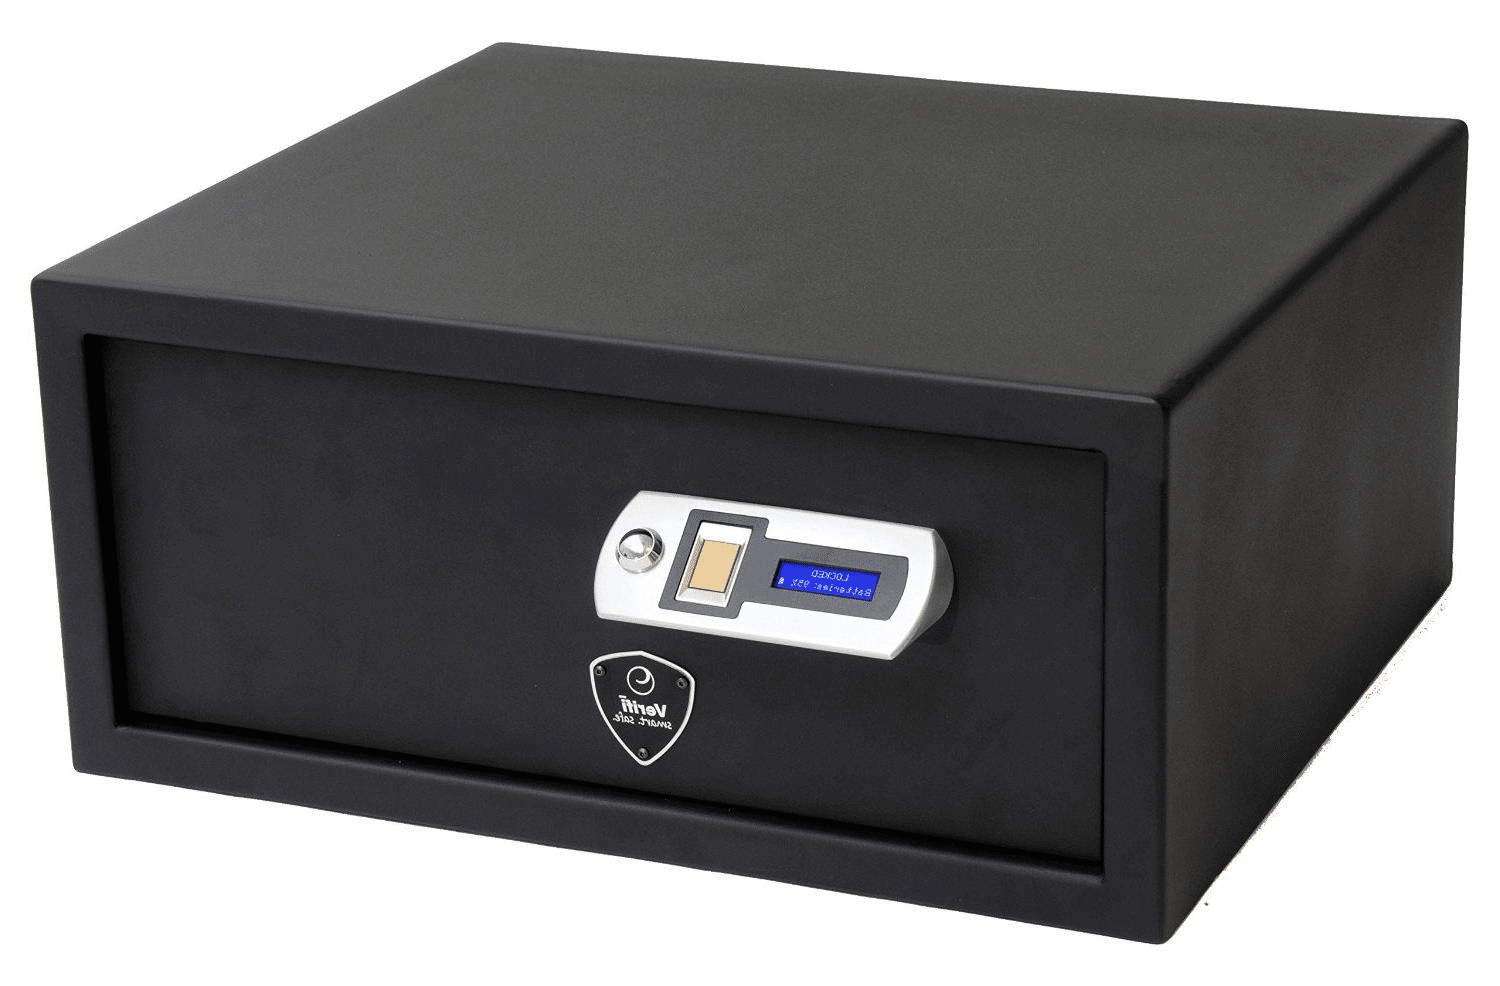 image of the Verifi S6000 Smart Safe